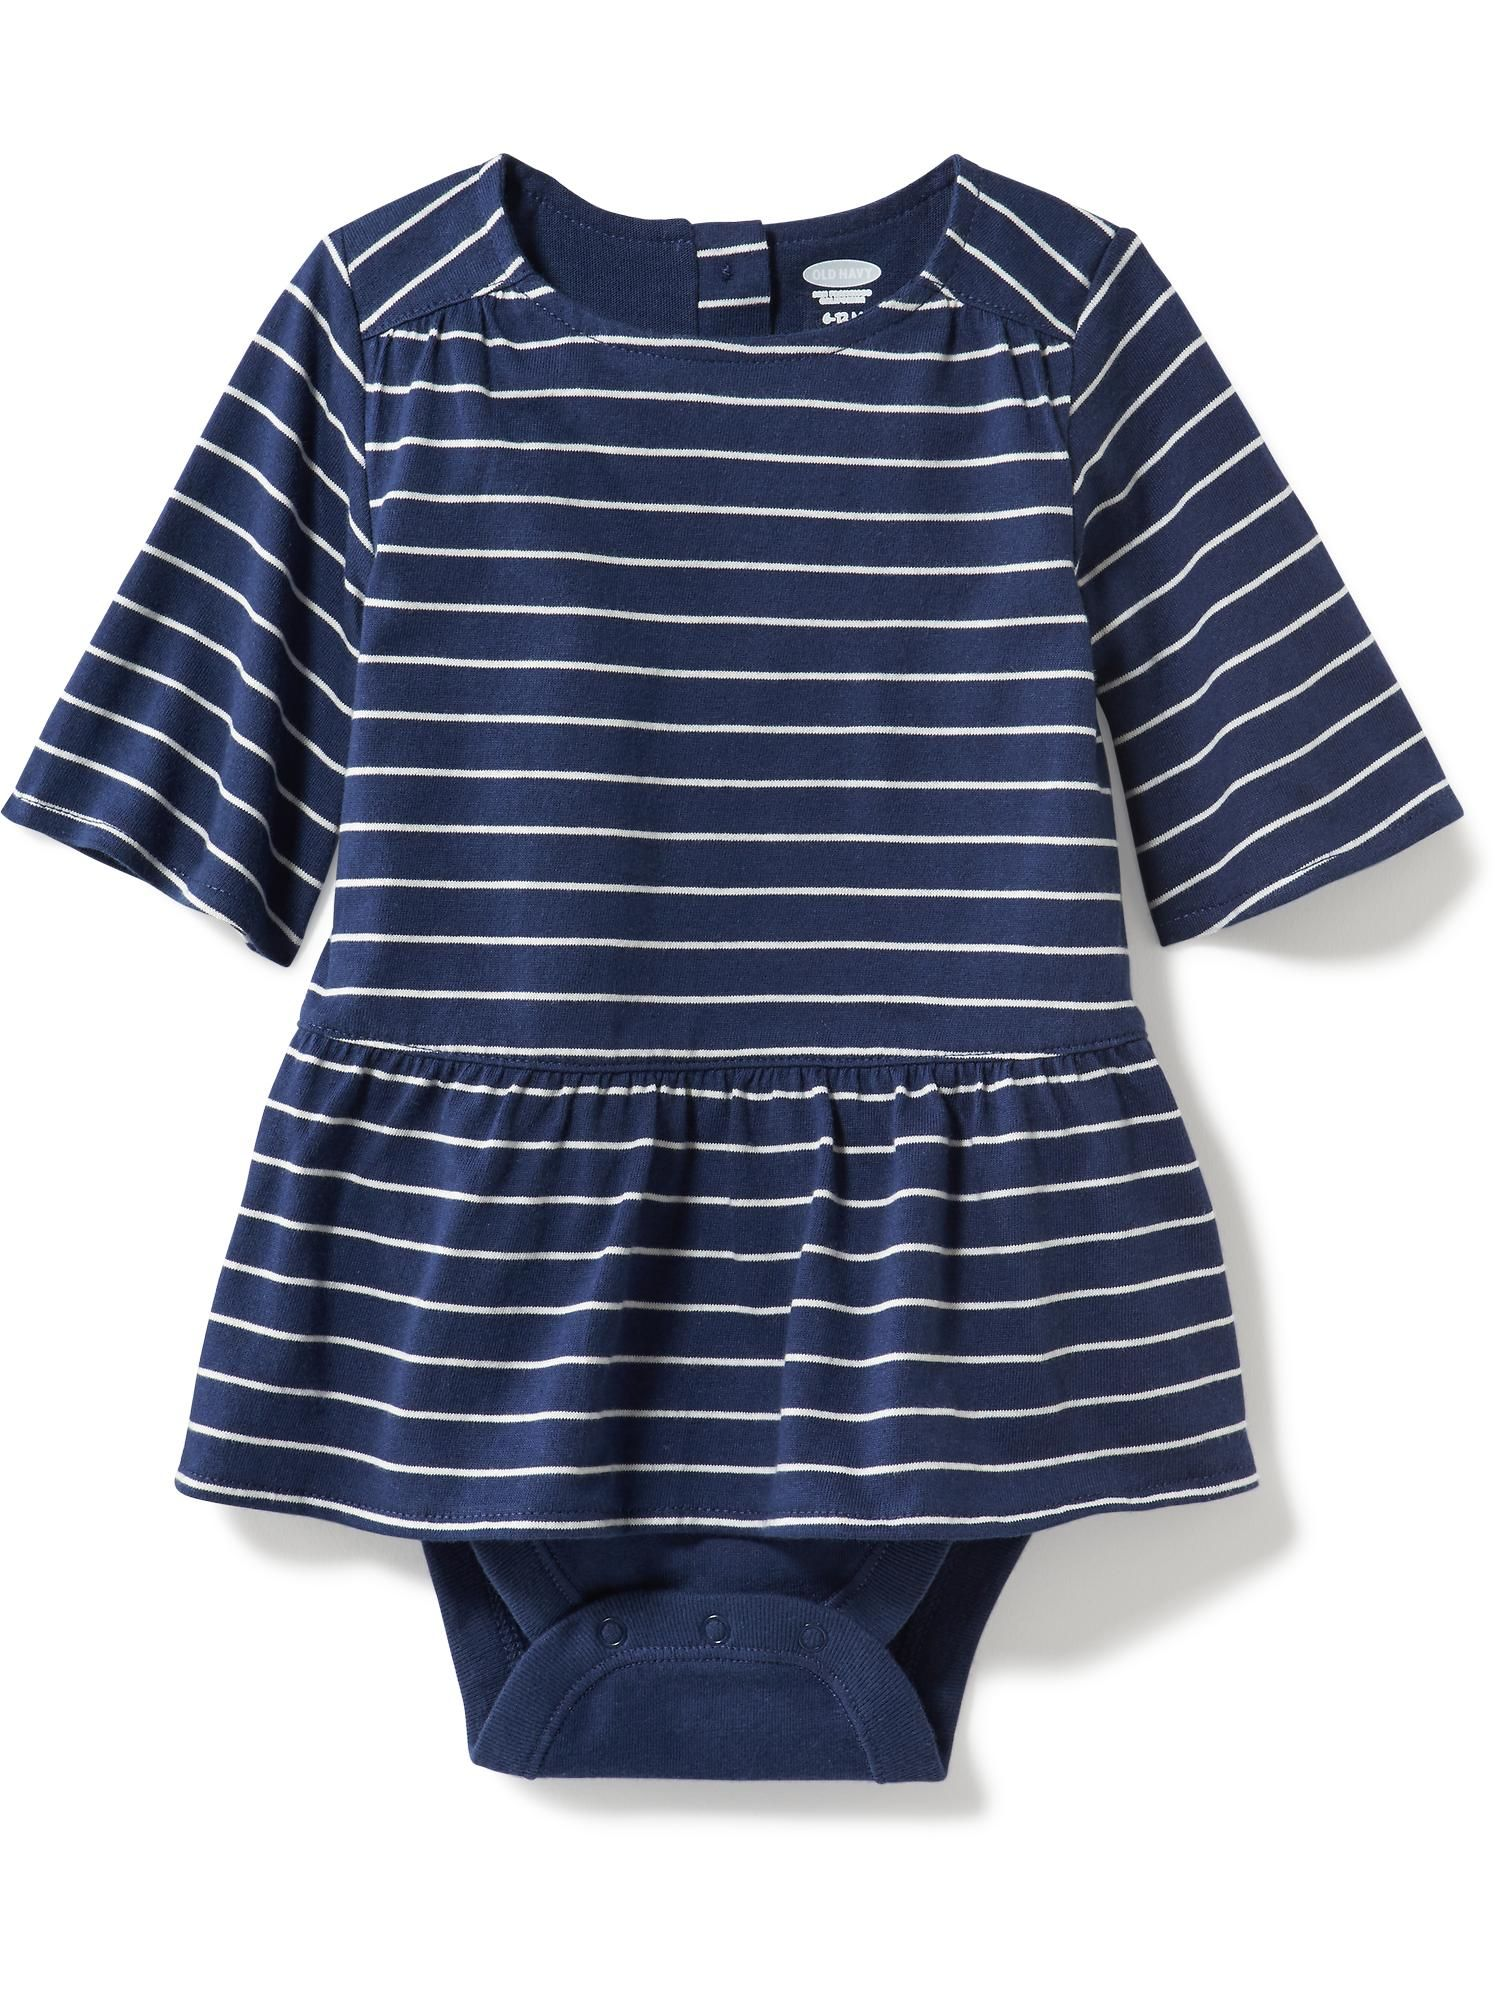 2 in 1 Peplum Bodysuit for Baby Old Navy baby girl 4